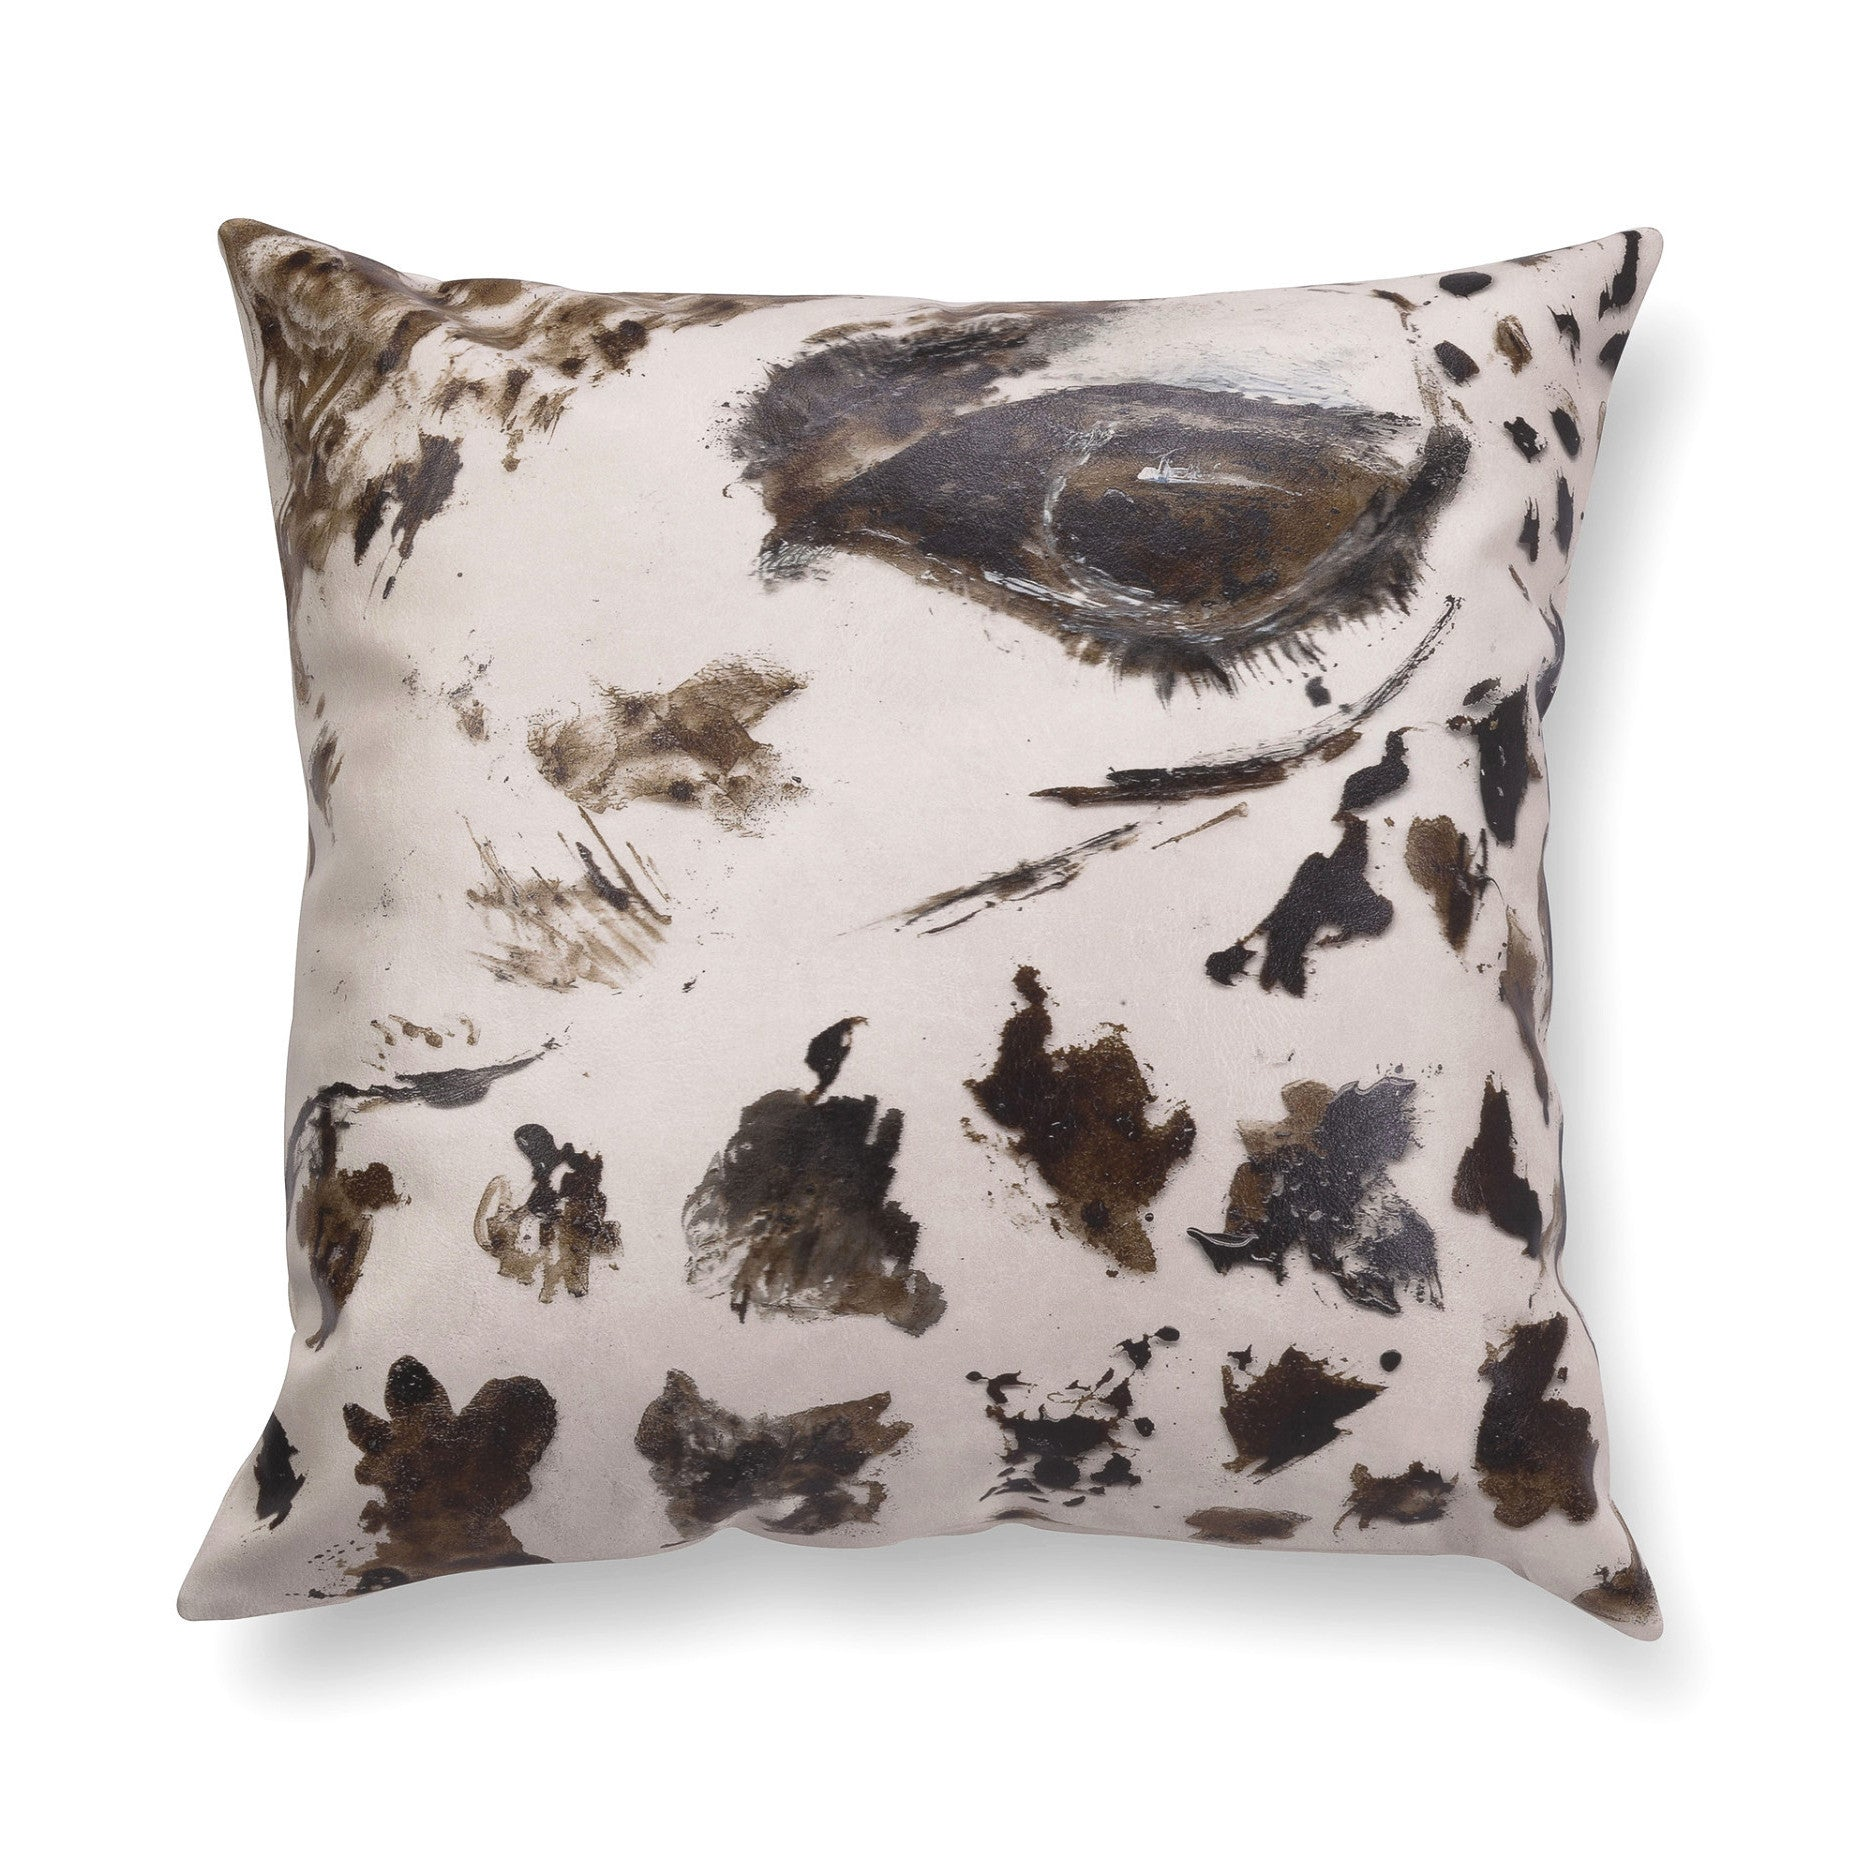 Illustrated contemporary pillow - Gaze 4